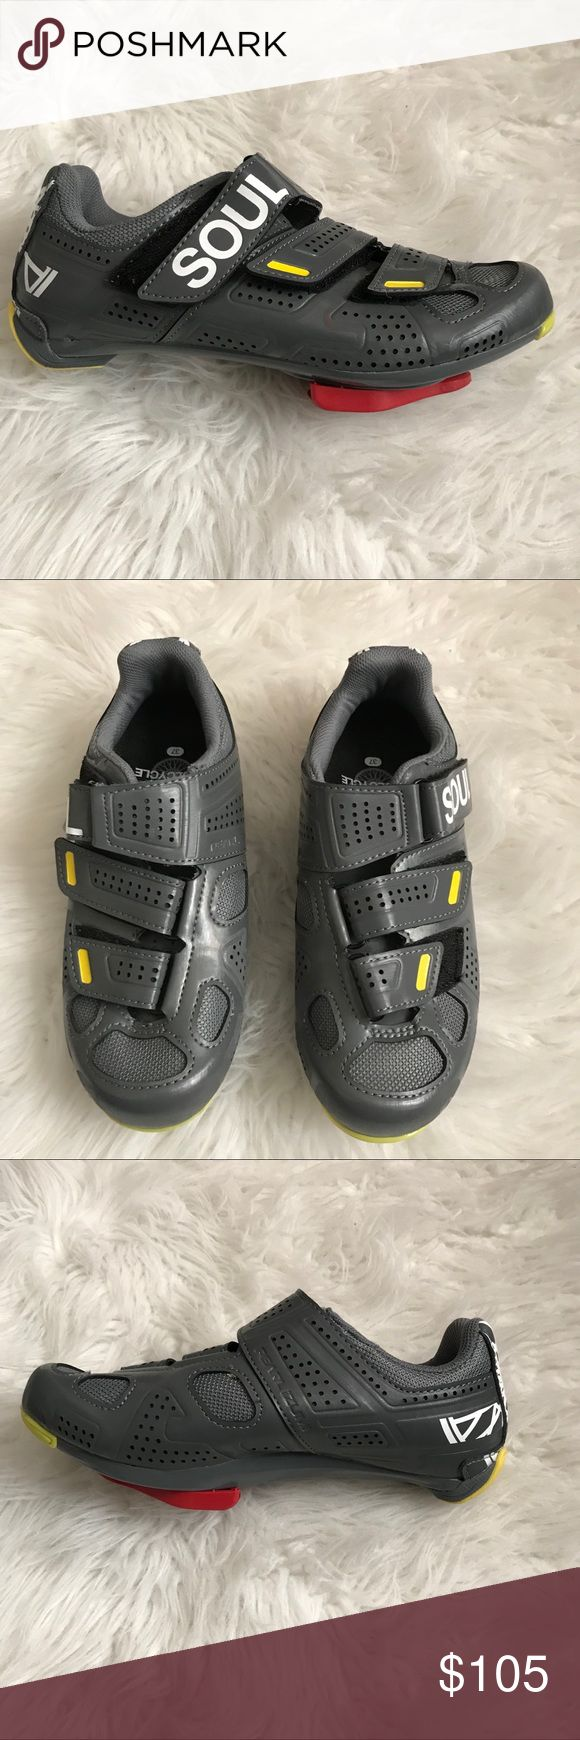 Soul Cycle Spinning Shoe (Updated Sizing) Gently used. Perfect for cycling! Soul Cycling Sizing: 37 = 5.0 in Women's soulcycle Shoes